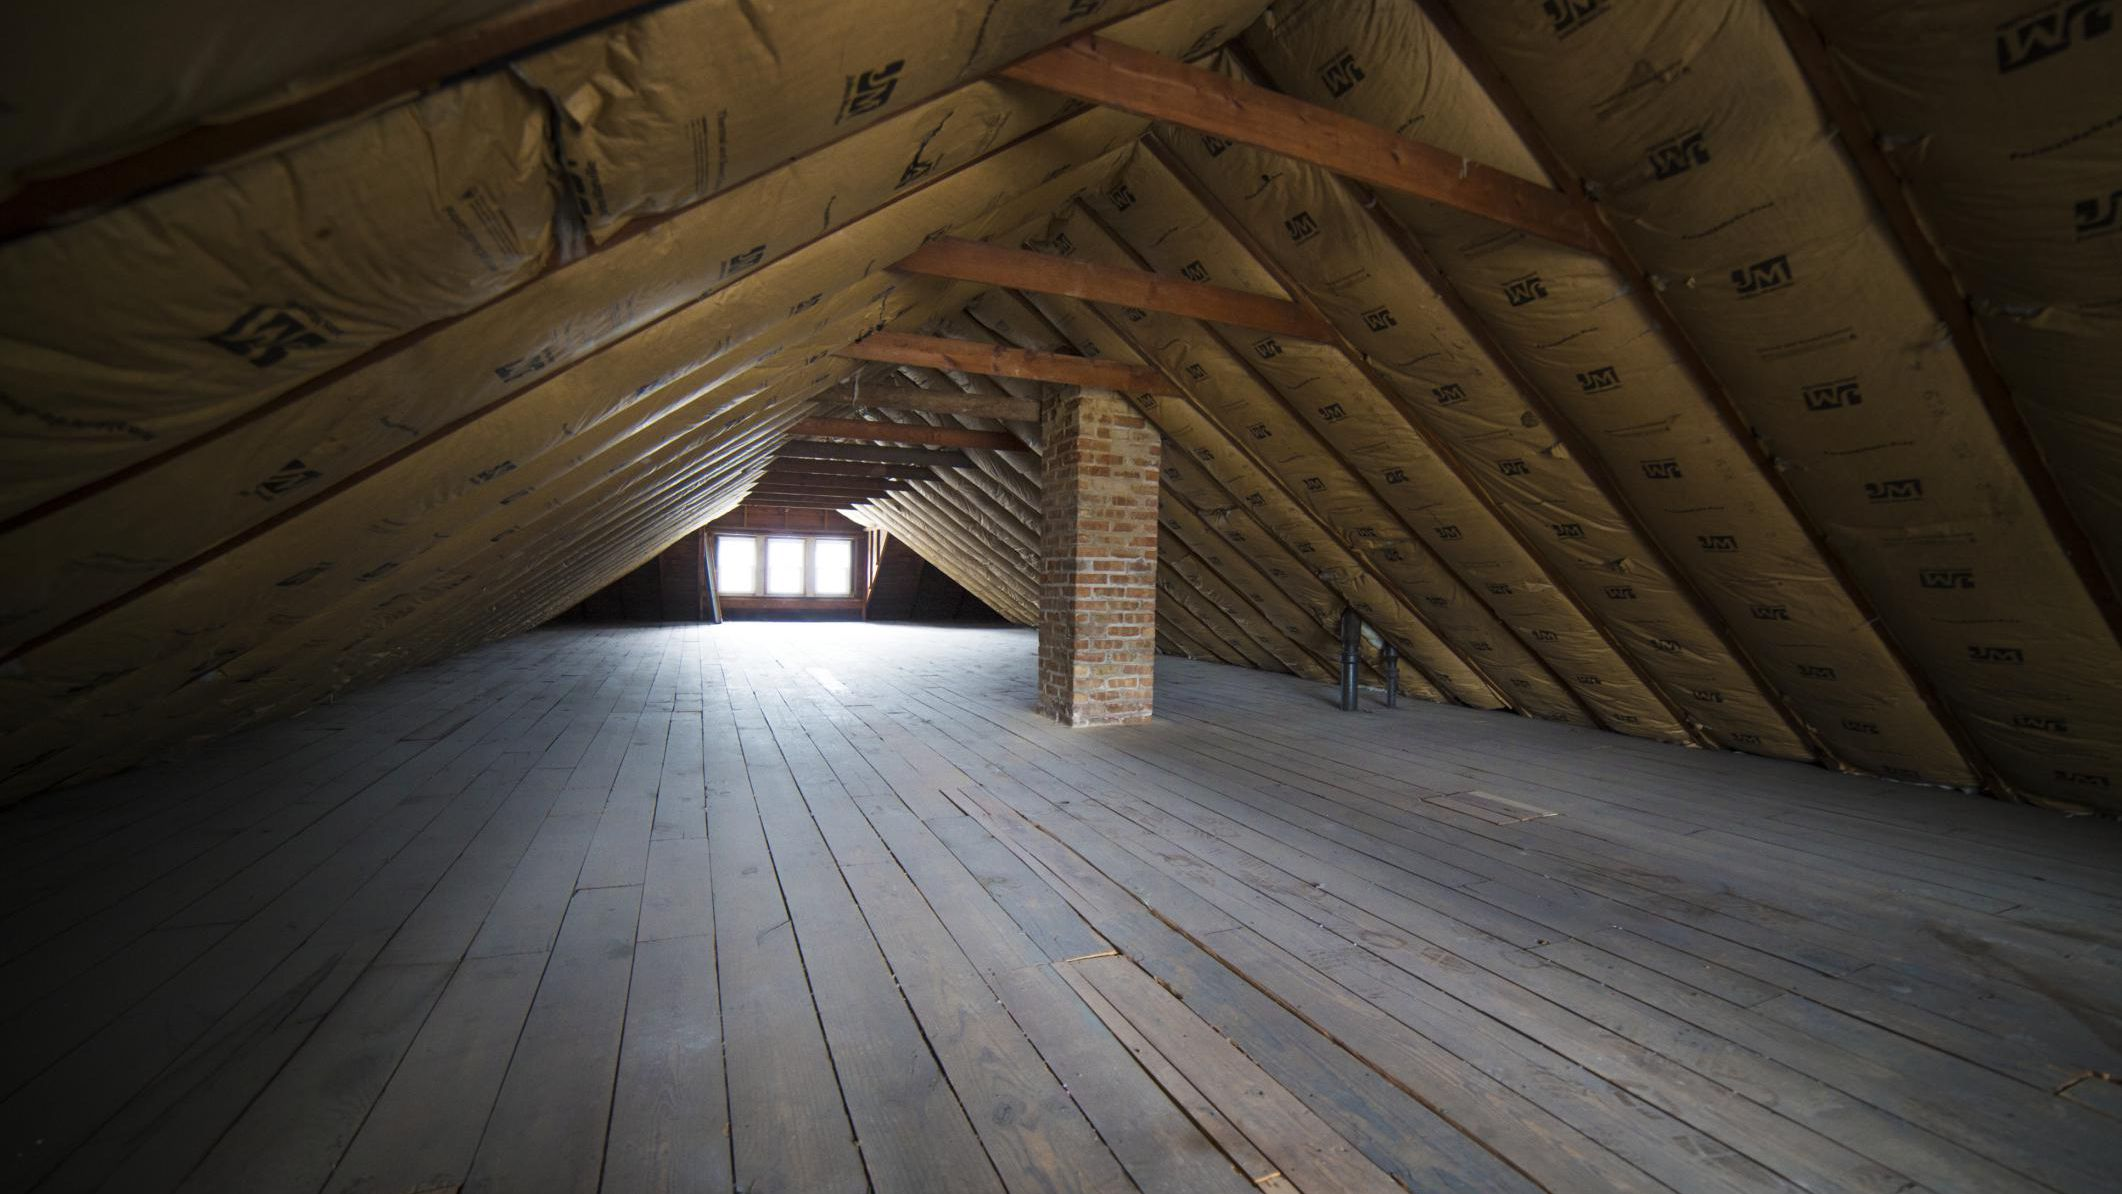 How to cool down an Attic?